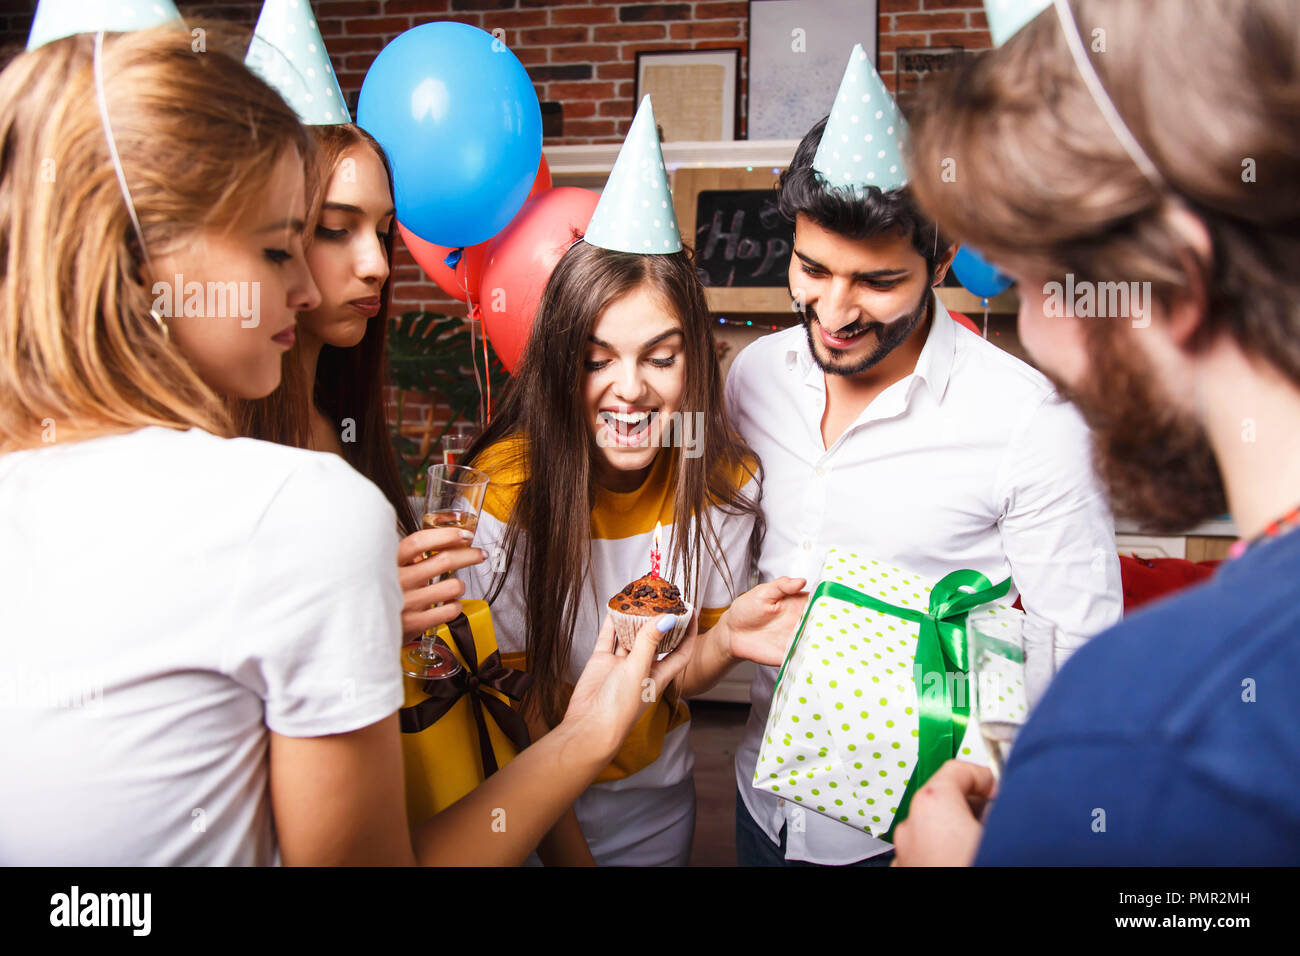 Pretty long hair brunette birthday girl in a party hat celebrating her birthday with the friends - Stock Image